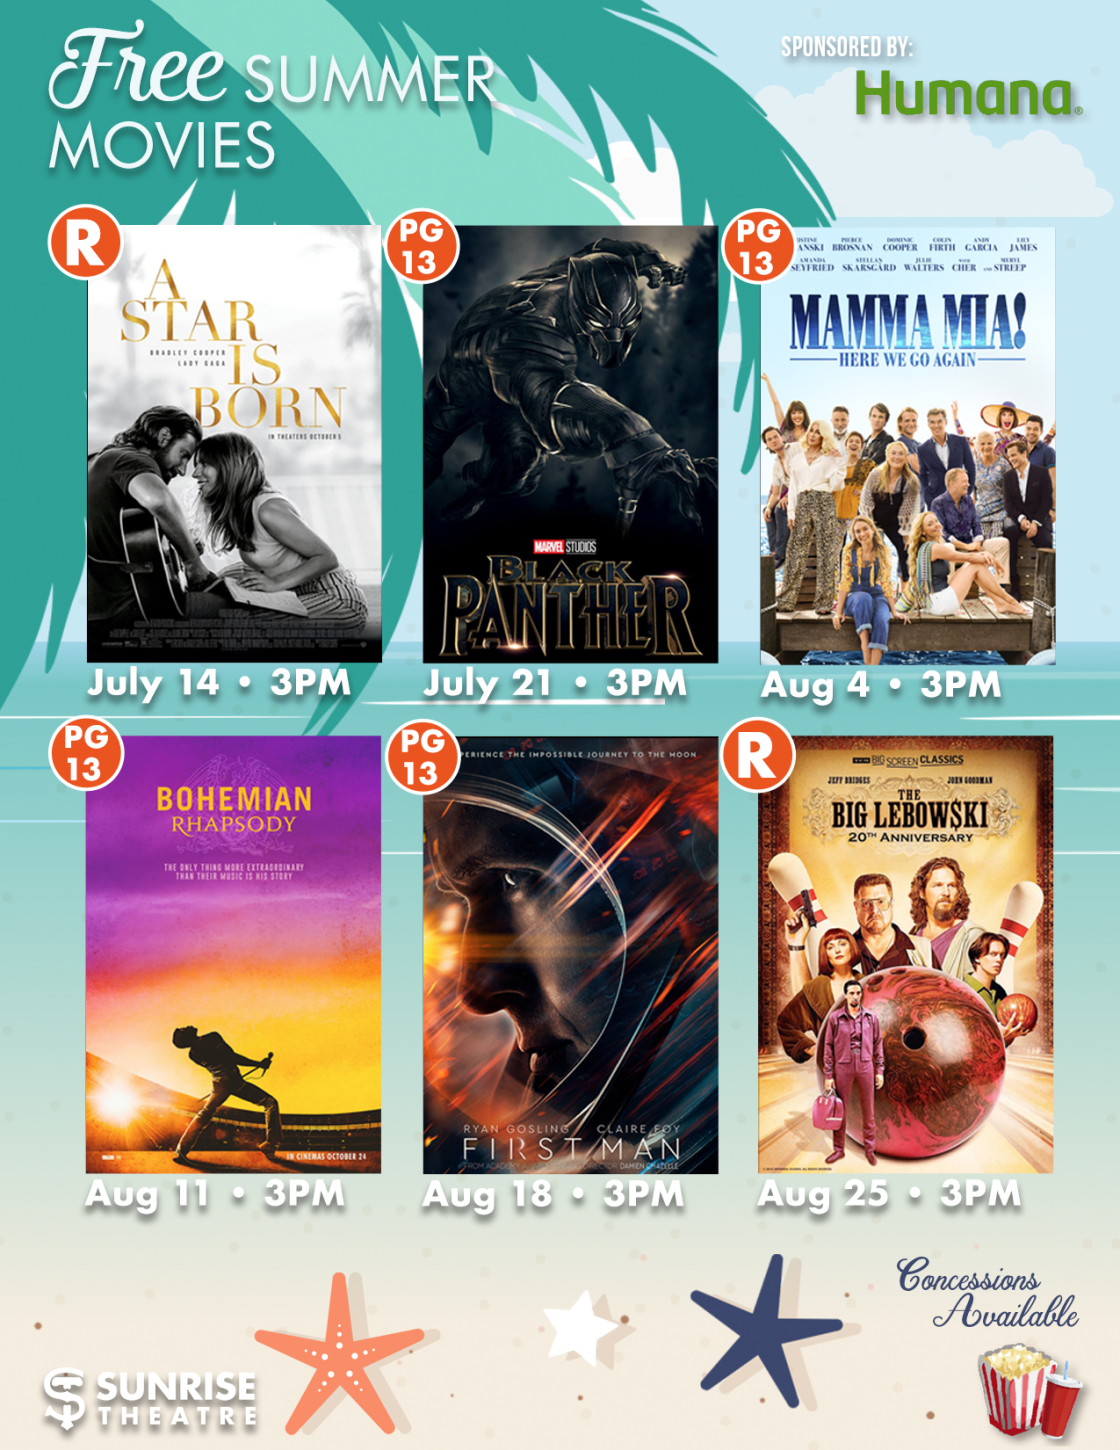 Free Summer Movies For Adults at the Sunrise Theatre